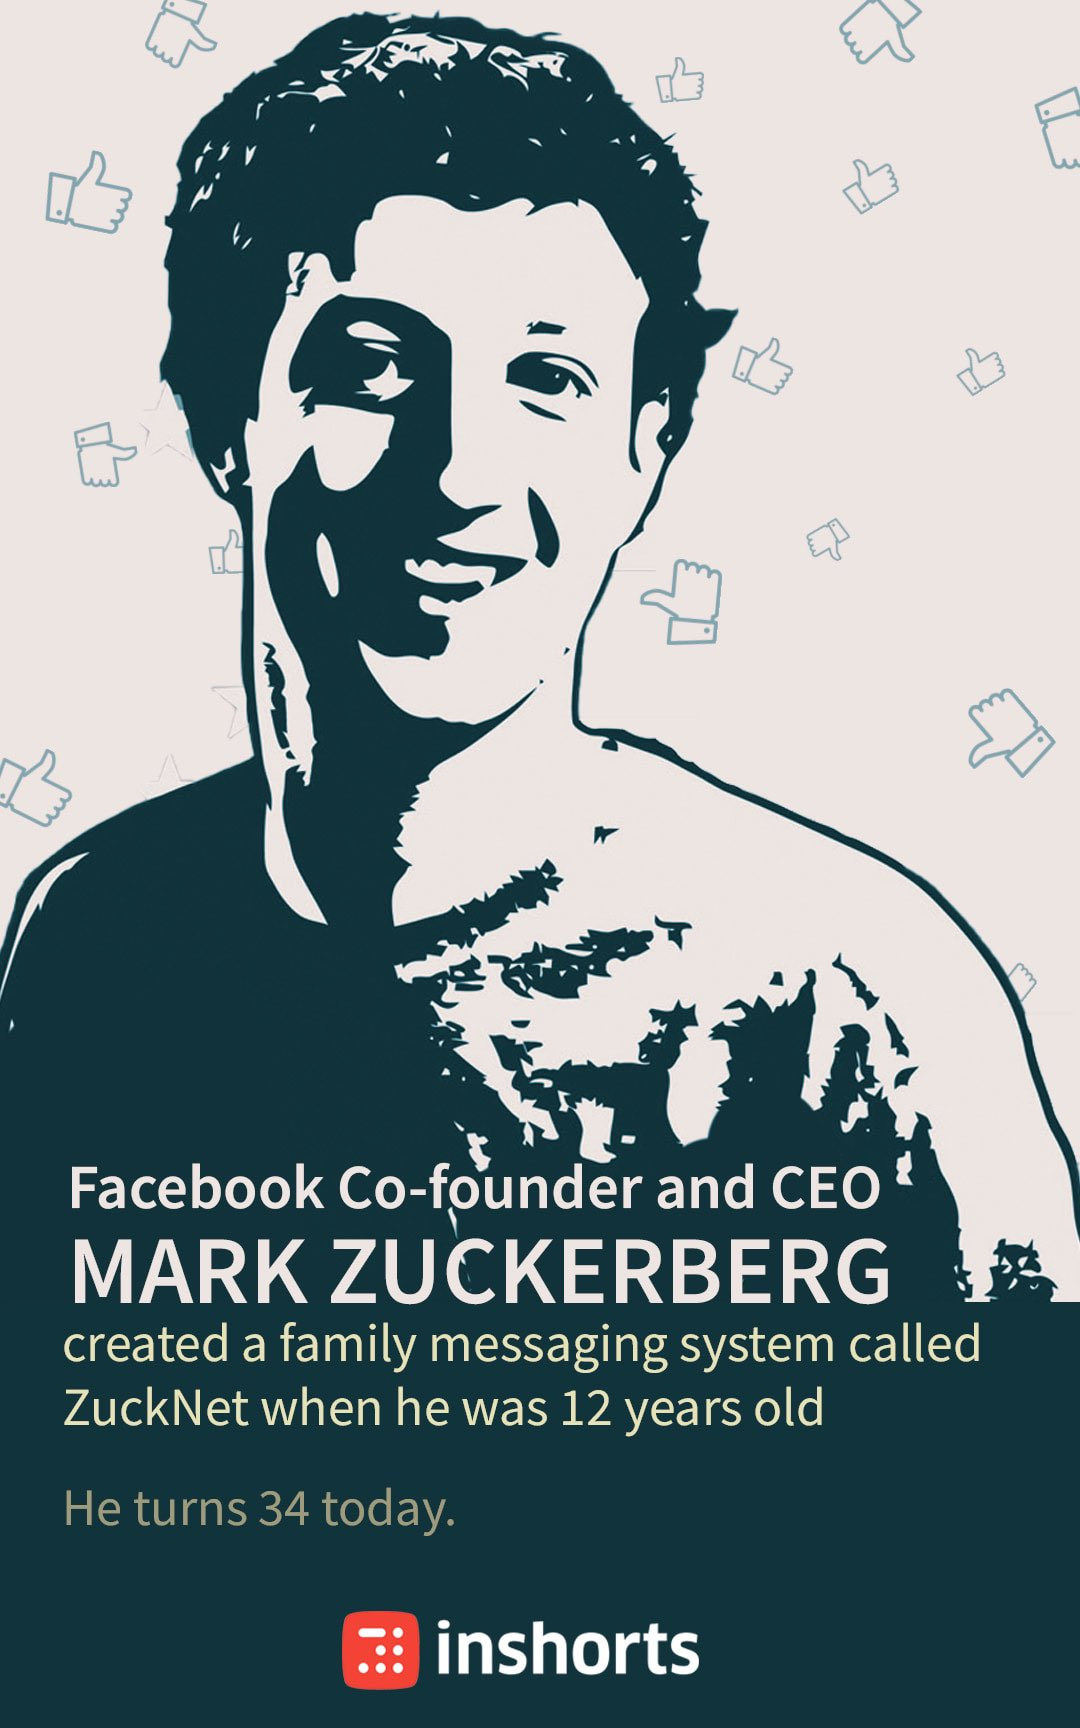 Happy Birthday Mark Zuckerberg! !!